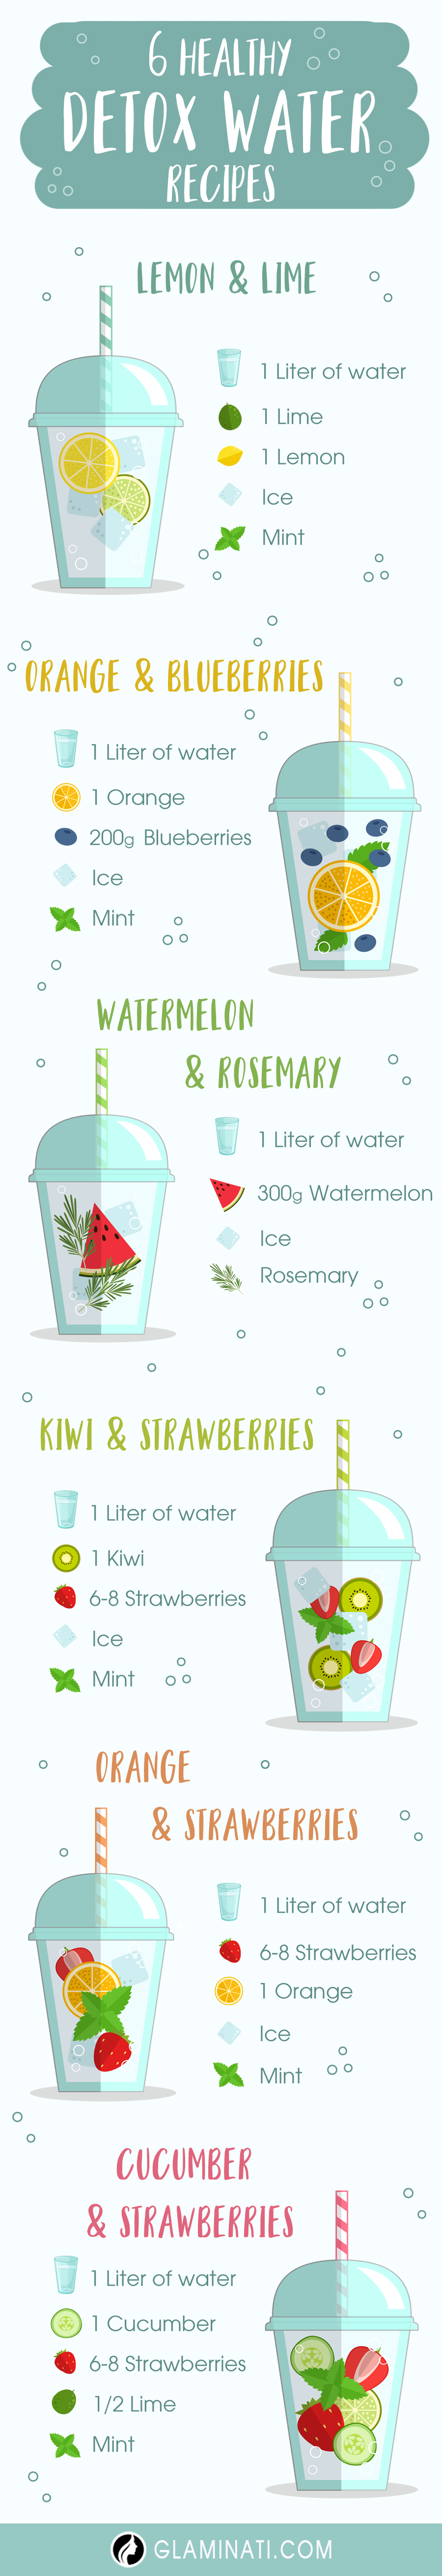 Your Best Friends For This Summer: Healthy Detox Drinks Infographic